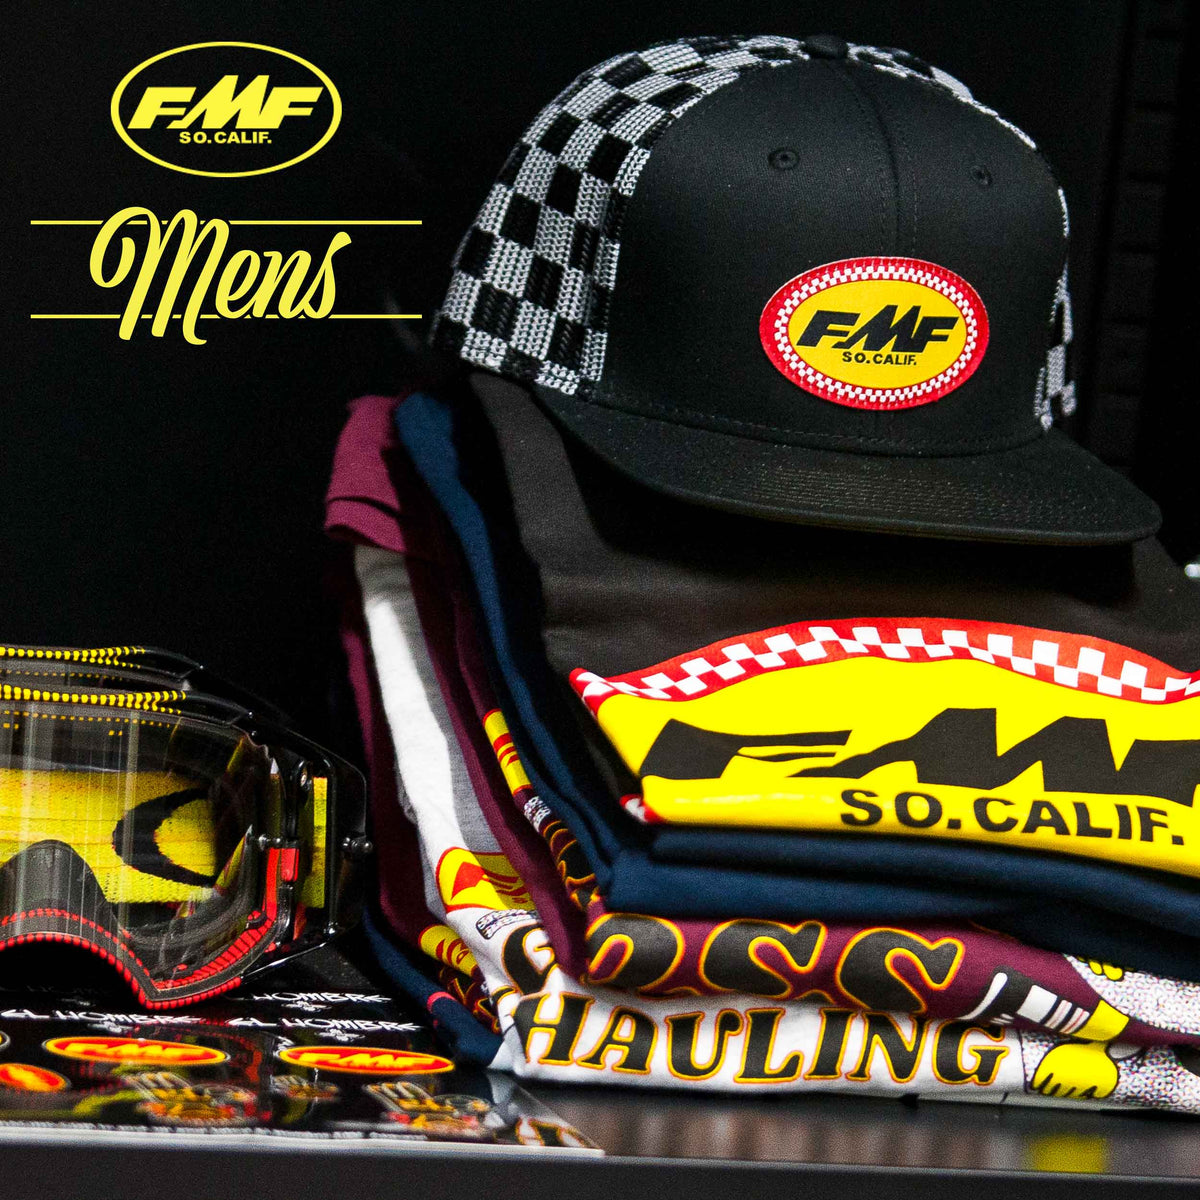 the best attitude dfb63 c667b Official FMF Racing Apparel, MX, Motocross Clothing Store